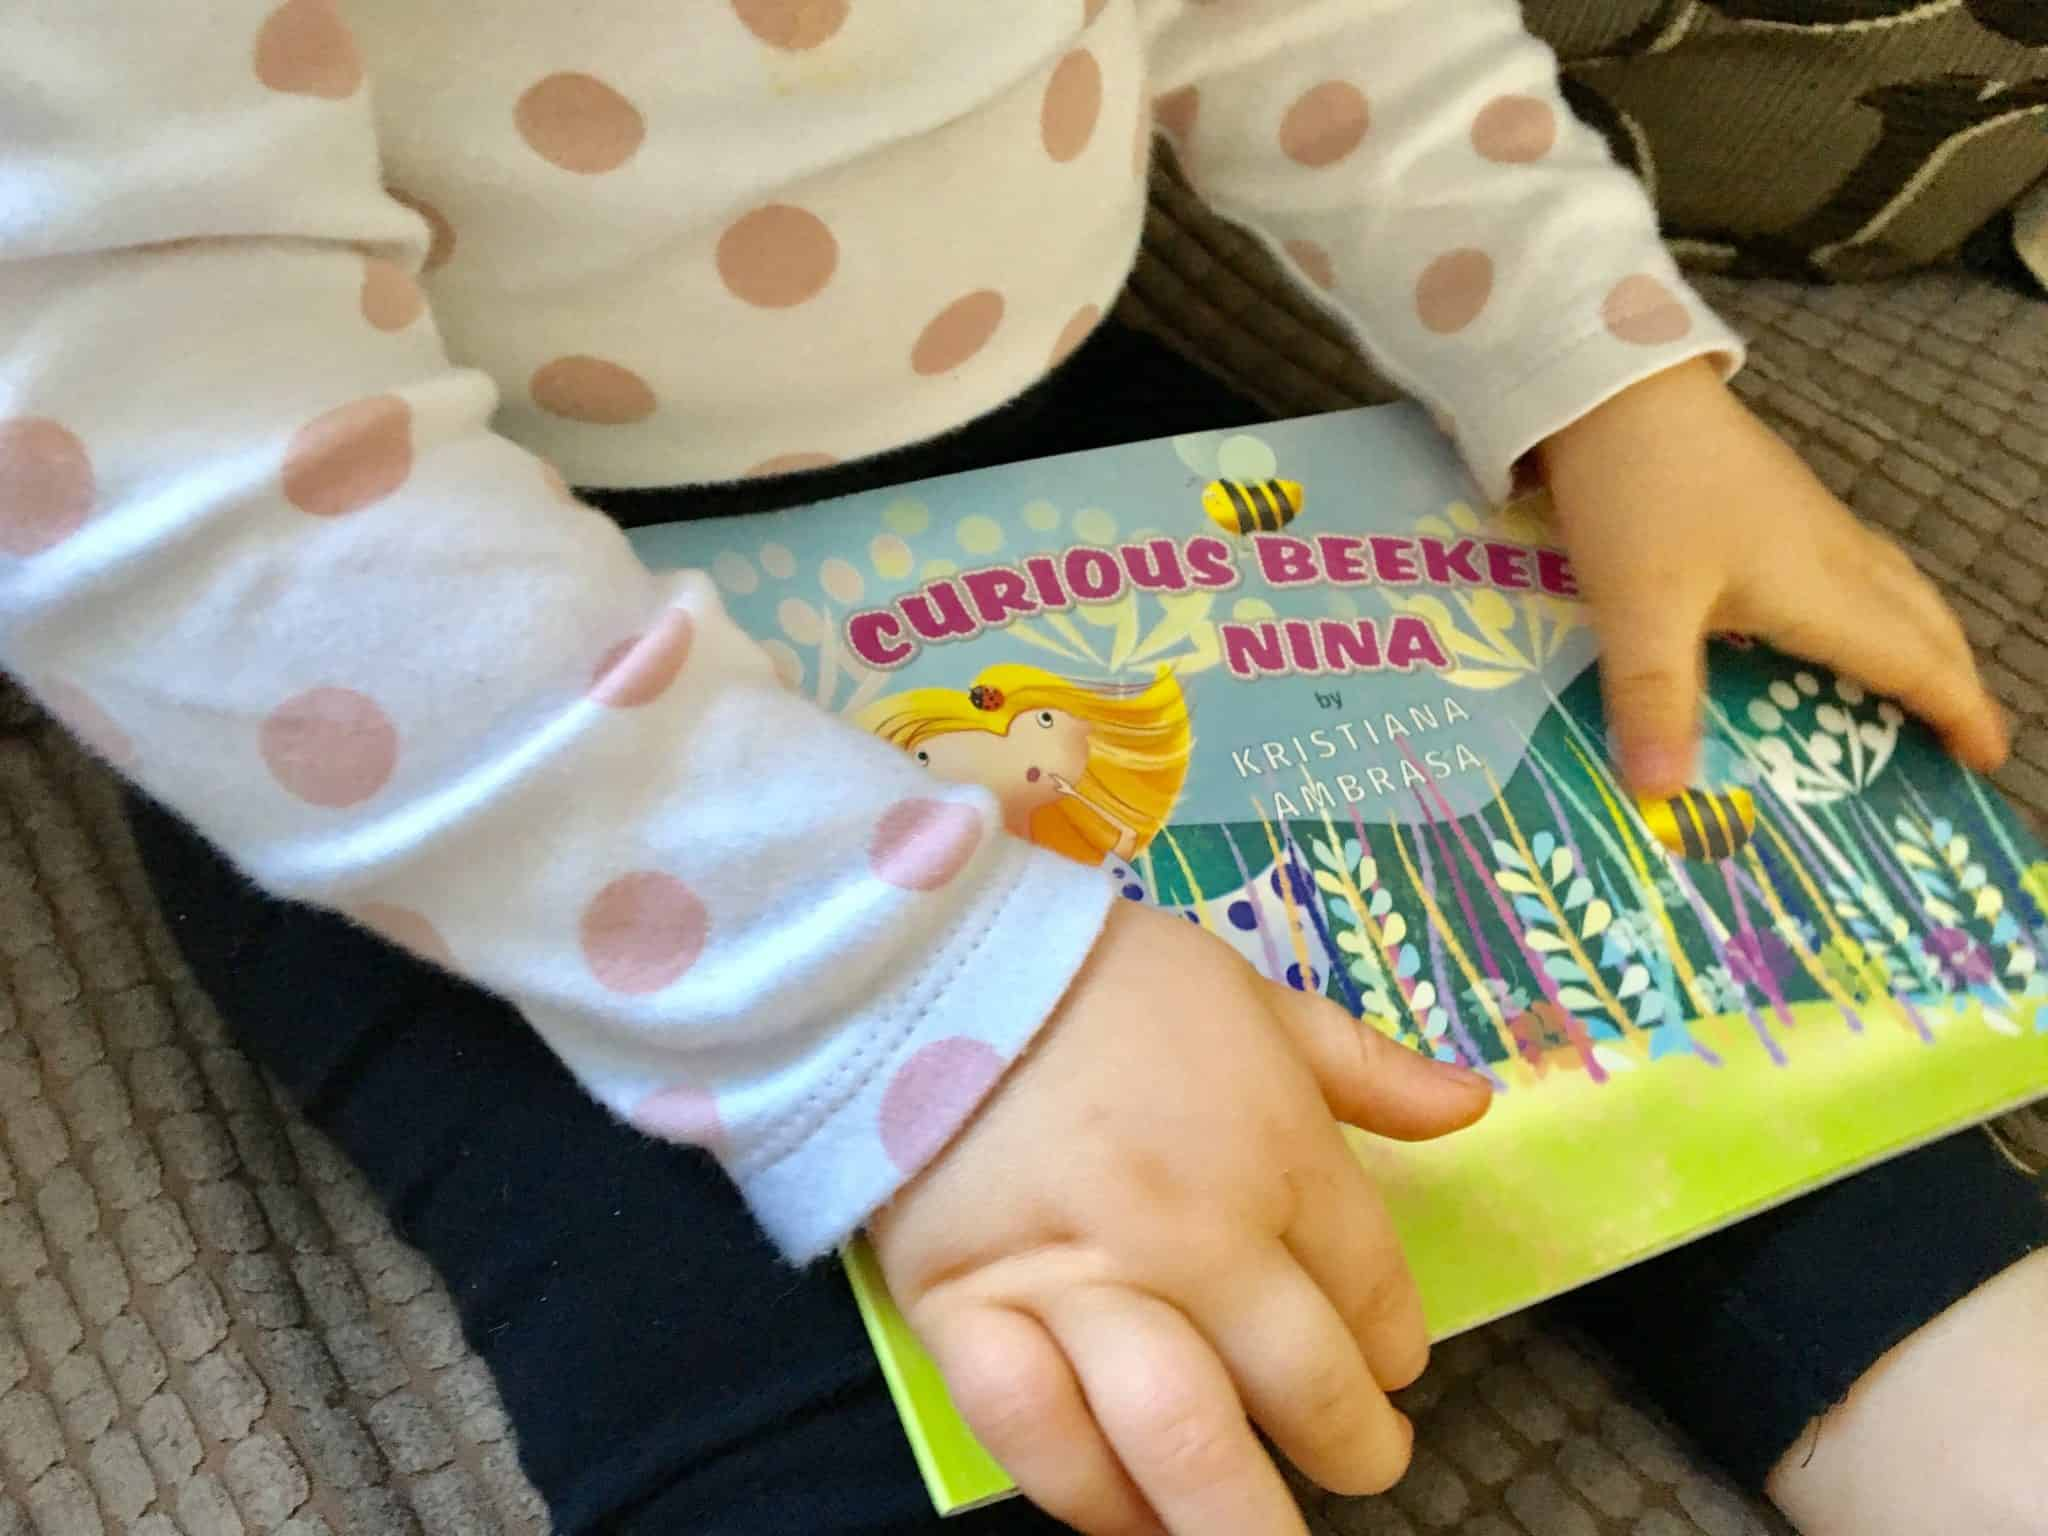 Baby Girl with her new book